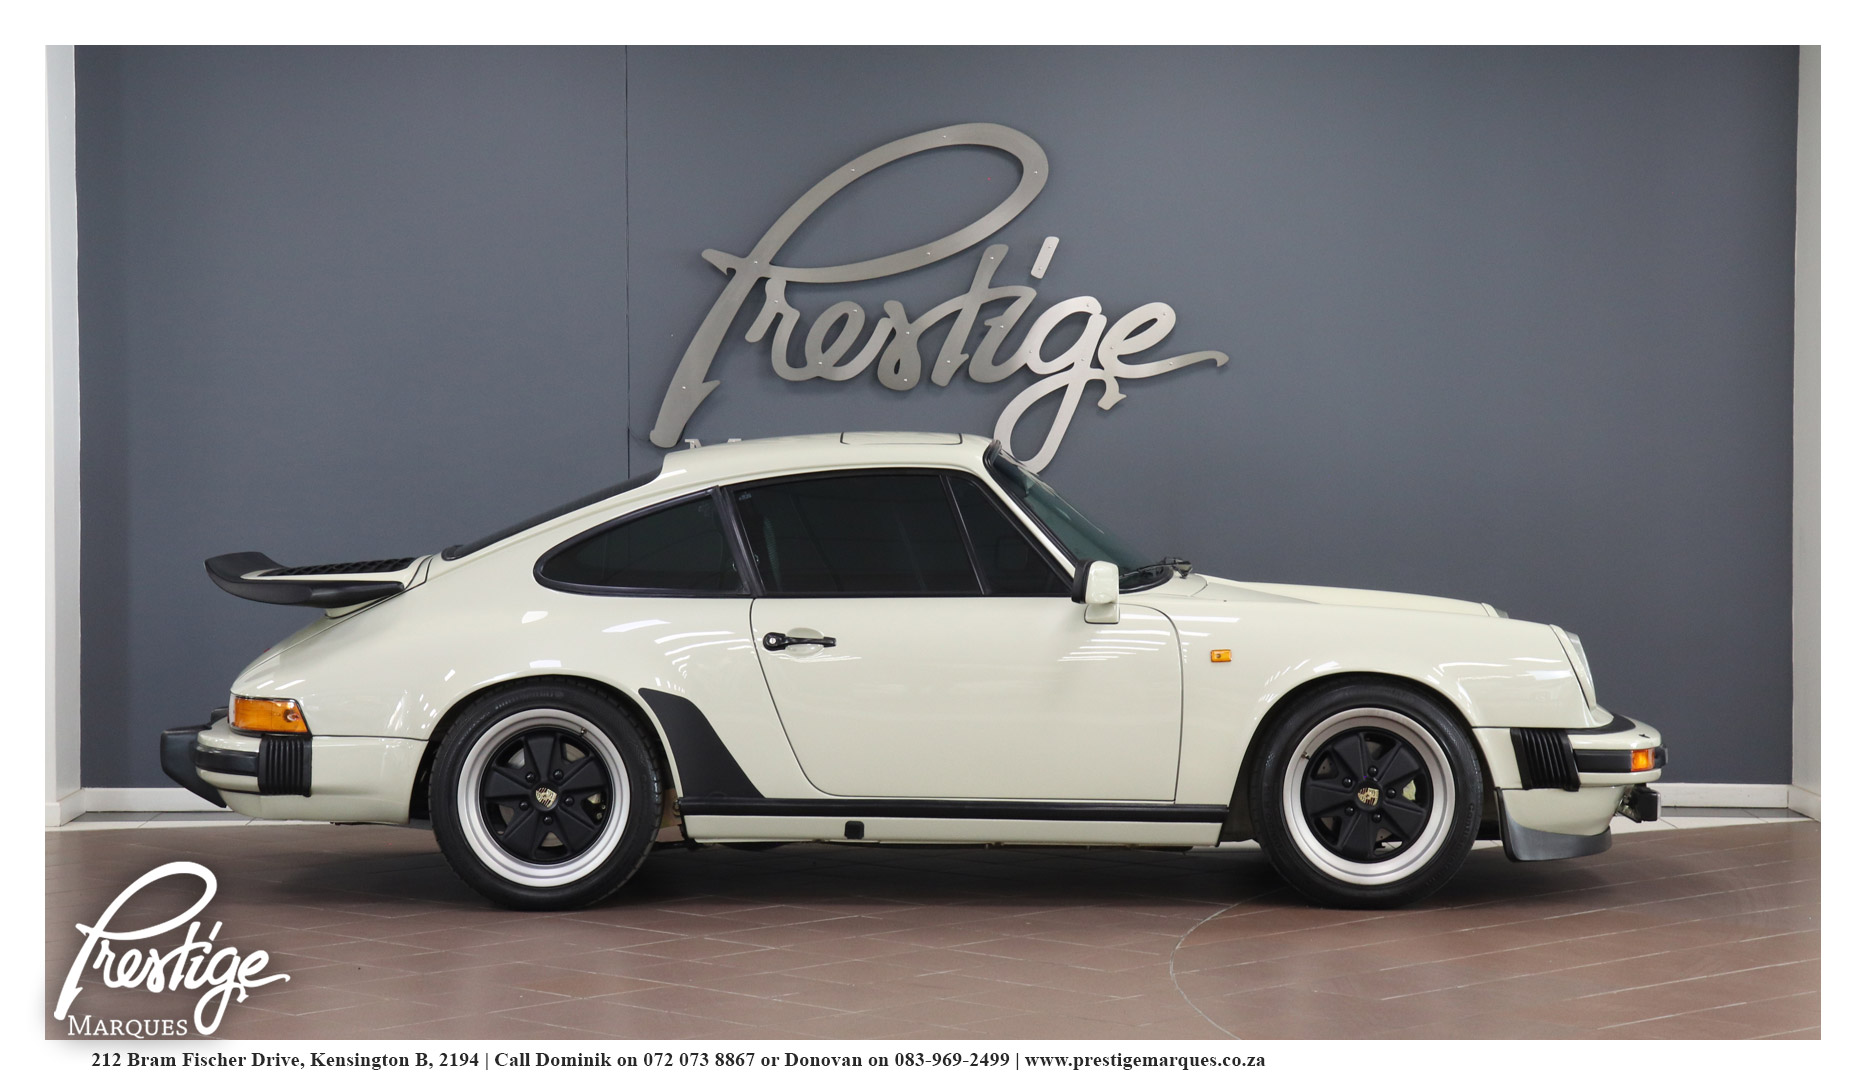 1982-Porsche-911-Carrera-20-Year-Anniversary-Tribute-Build-Prestige-Marques-Randburg-Sandton-2